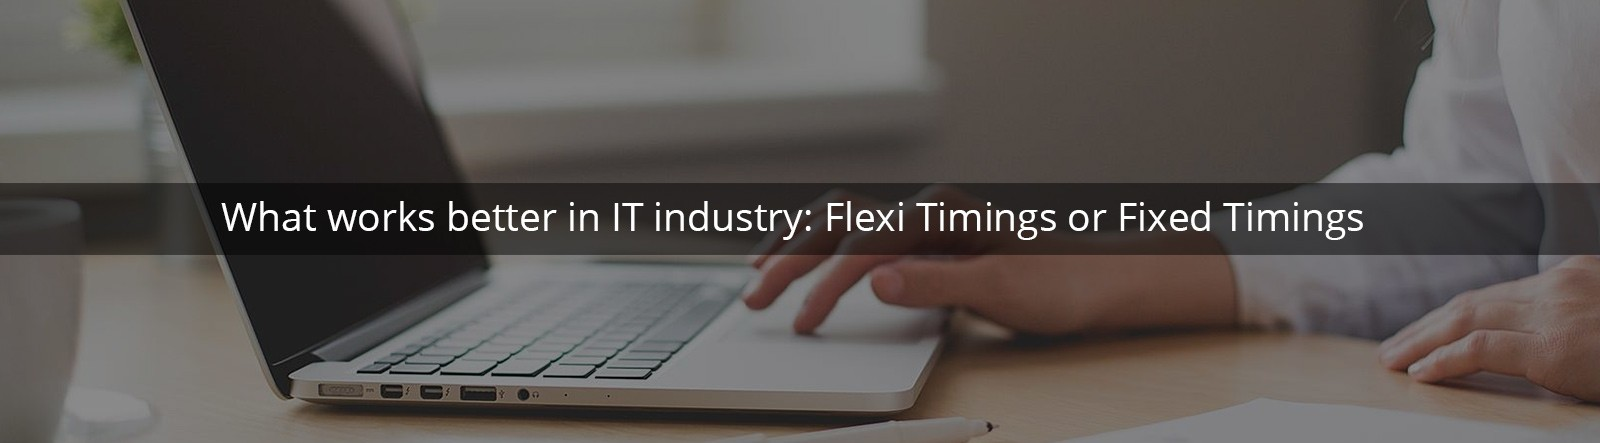 What works better in IT industry: Fixed working hours Vs Flexible working hours?